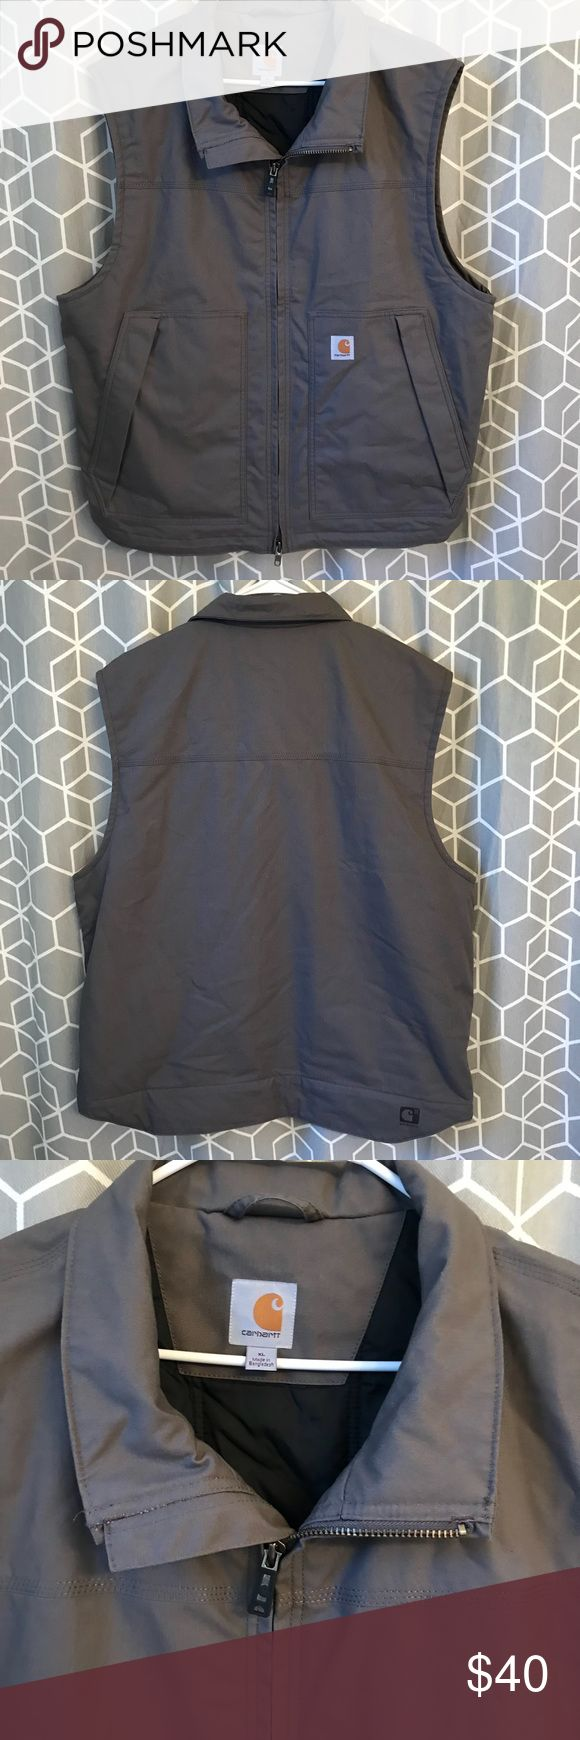 Carhartt men's thinsulate gray full zip vest nwot CARHARTT  MEN'S VEST  GRAY  Size XL   RN14806 ~ 101494 022  New, without tags   Men's water repellent, 3M Thinsulate Insulated Vest  Rain Defender durable water-repellent finish.  She'll 60% Cotton 40% Polyester  Nylon lining quilted to 80g 3M Thinsulate Insulation.  neck collar with zip-through front.   Two large lower-front pockets with zipper closures and storm flaps.  1 inside zipper pocket and 1 pocket on other side.   Triple stitched…